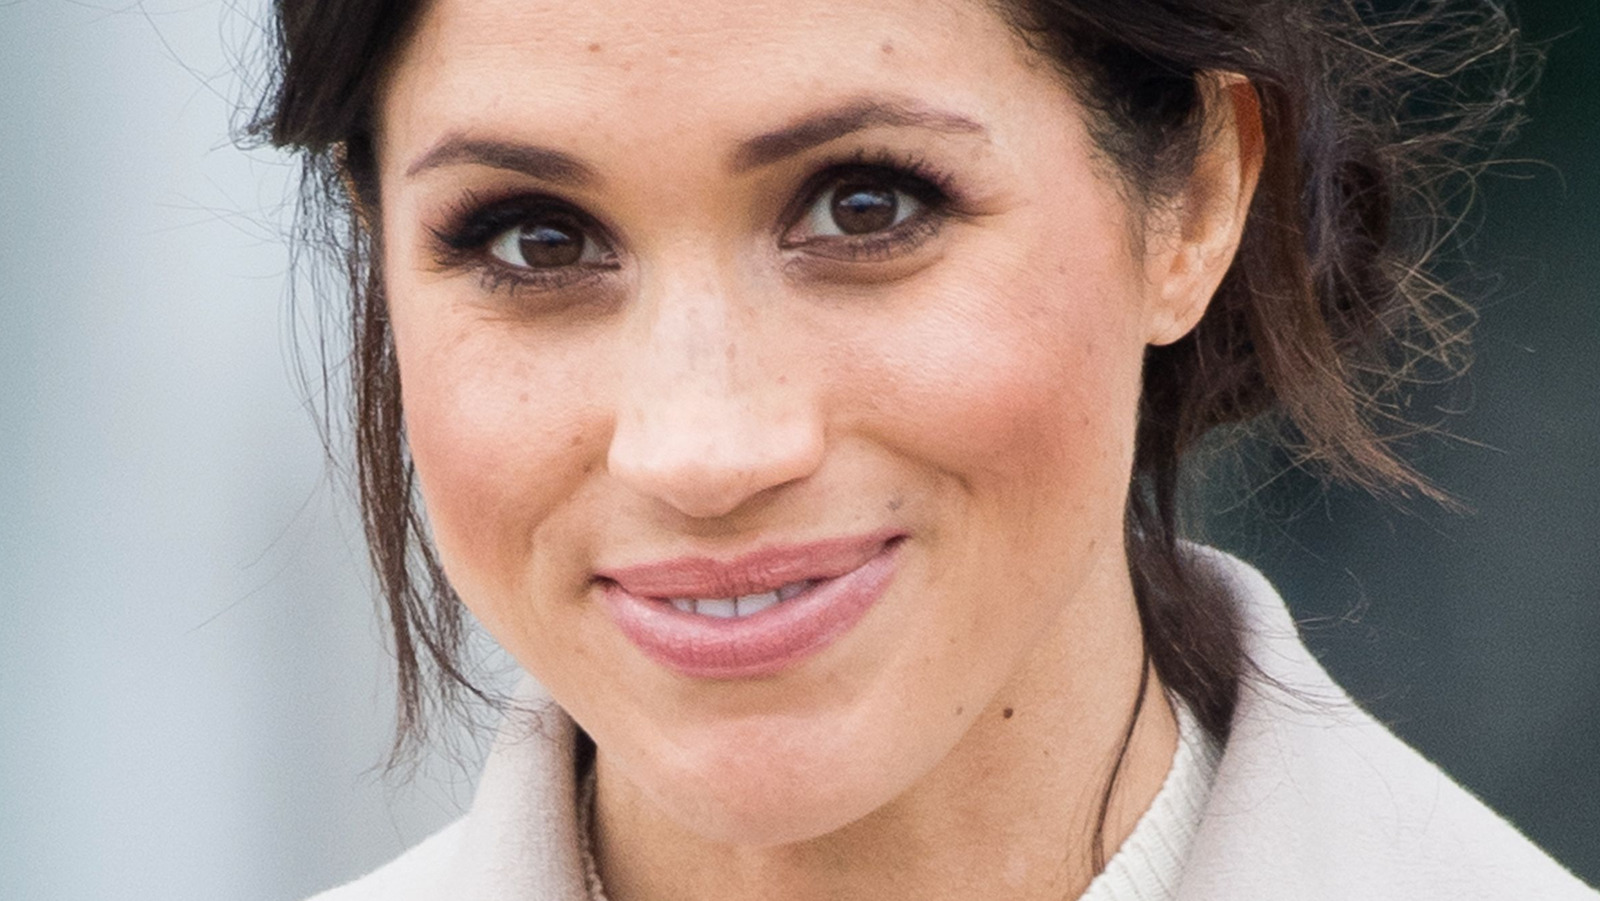 What's Really Going On With Baby Lilibet And The Royal Line Of Succession?